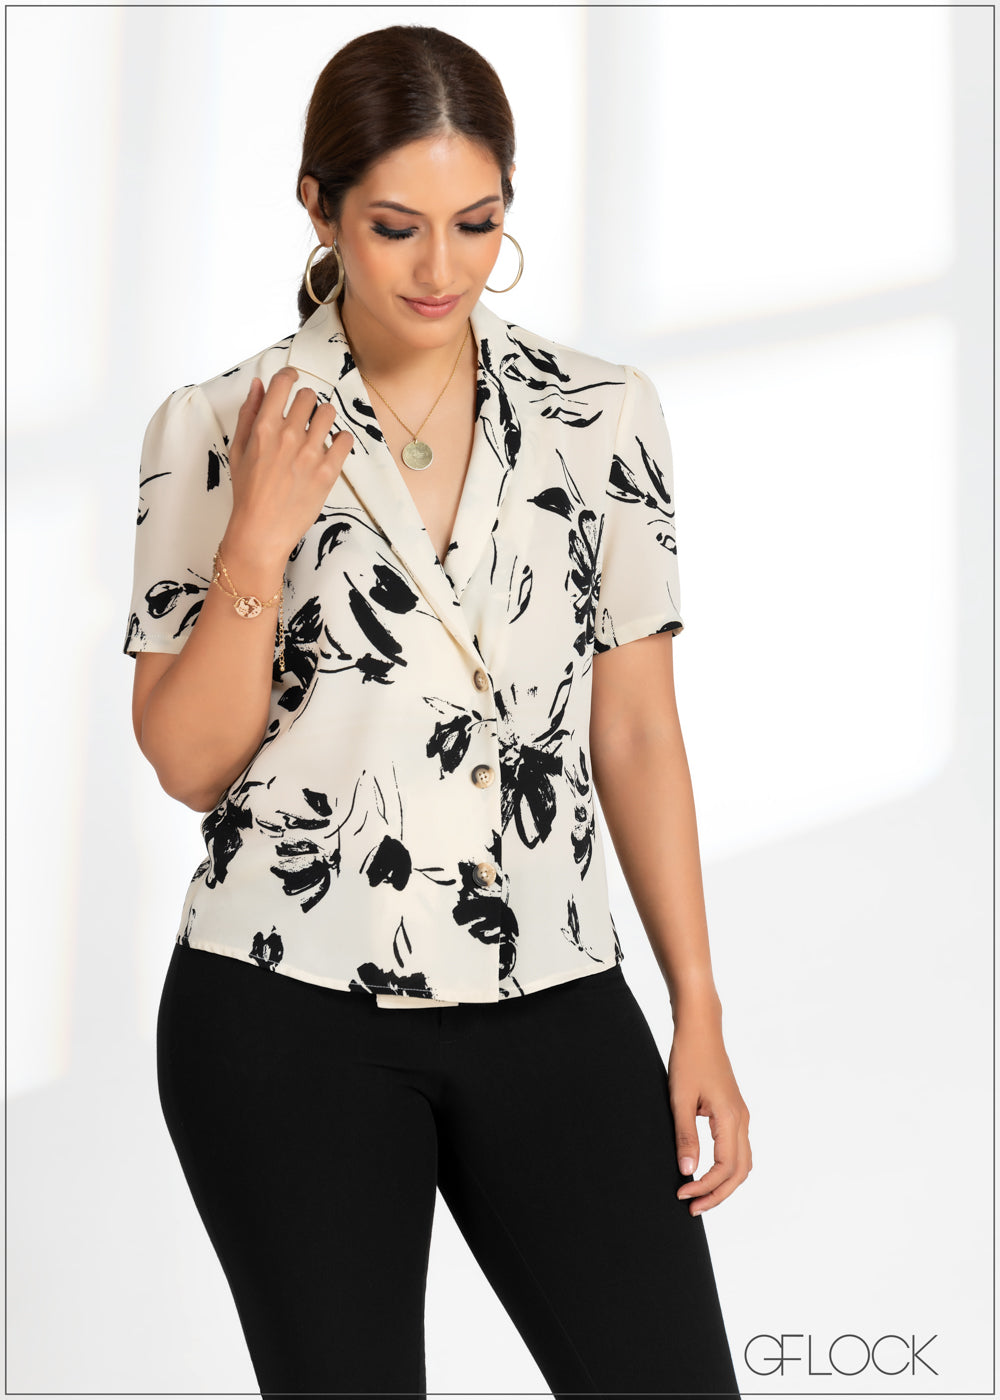 Printed Collared Top - GFLOCK.LK